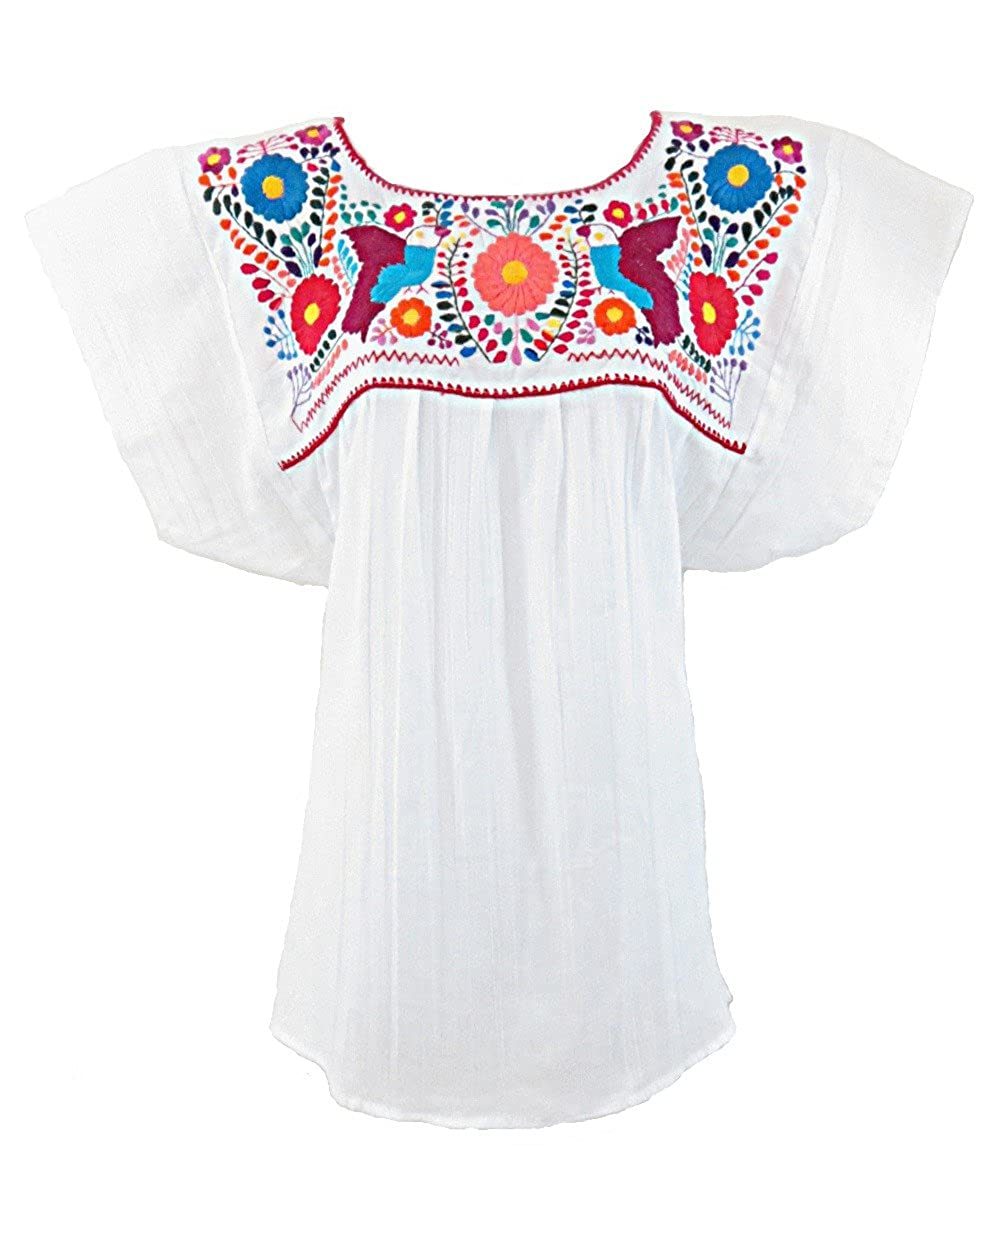 19da218ab61 Mexican Blouses  Buy The Best Design For You - Mexican Online Store